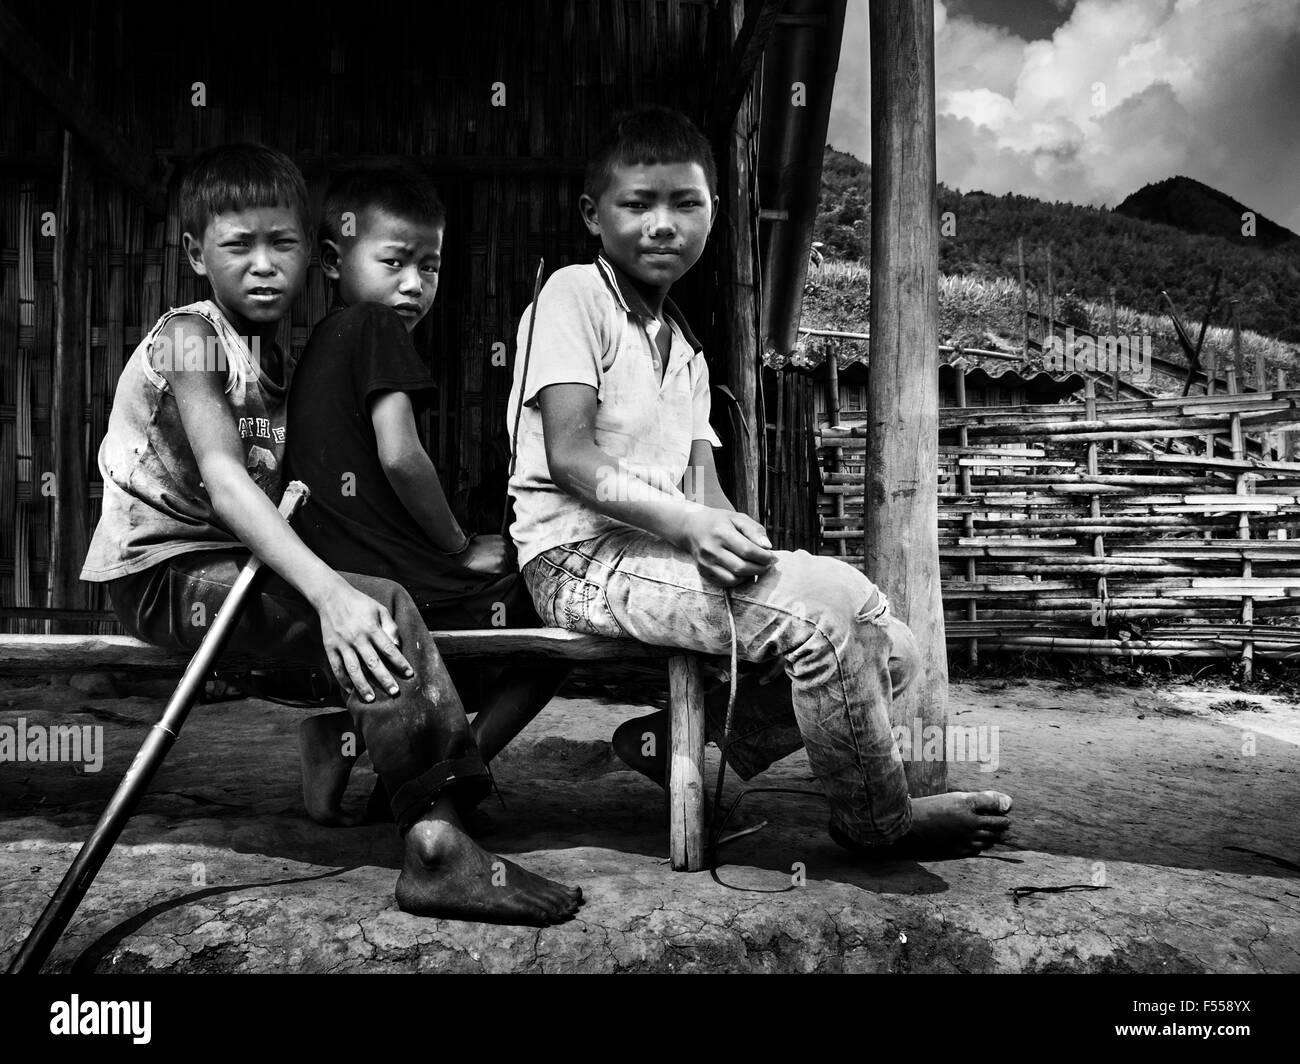 Three boys in the Muong Hoa VAlley, northern Vietnam. - Stock Image